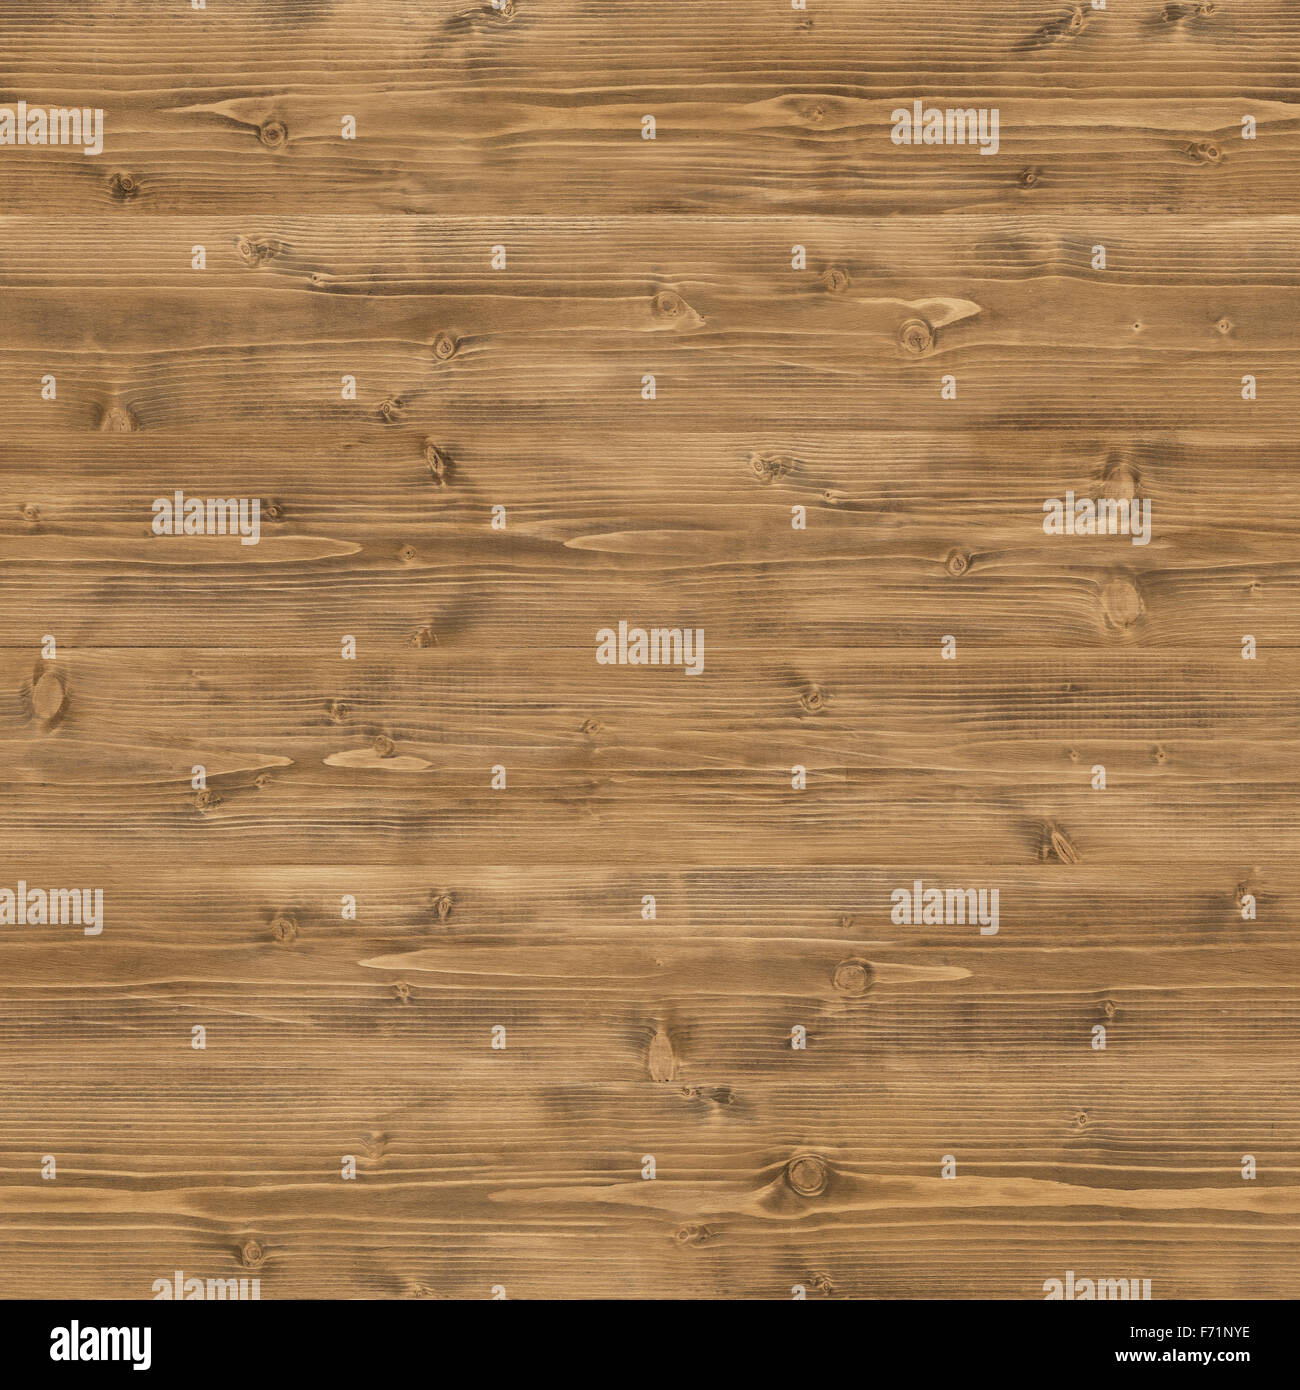 Dark Wood Texture Seamless Stock Photos Dark Wood Texture Seamless